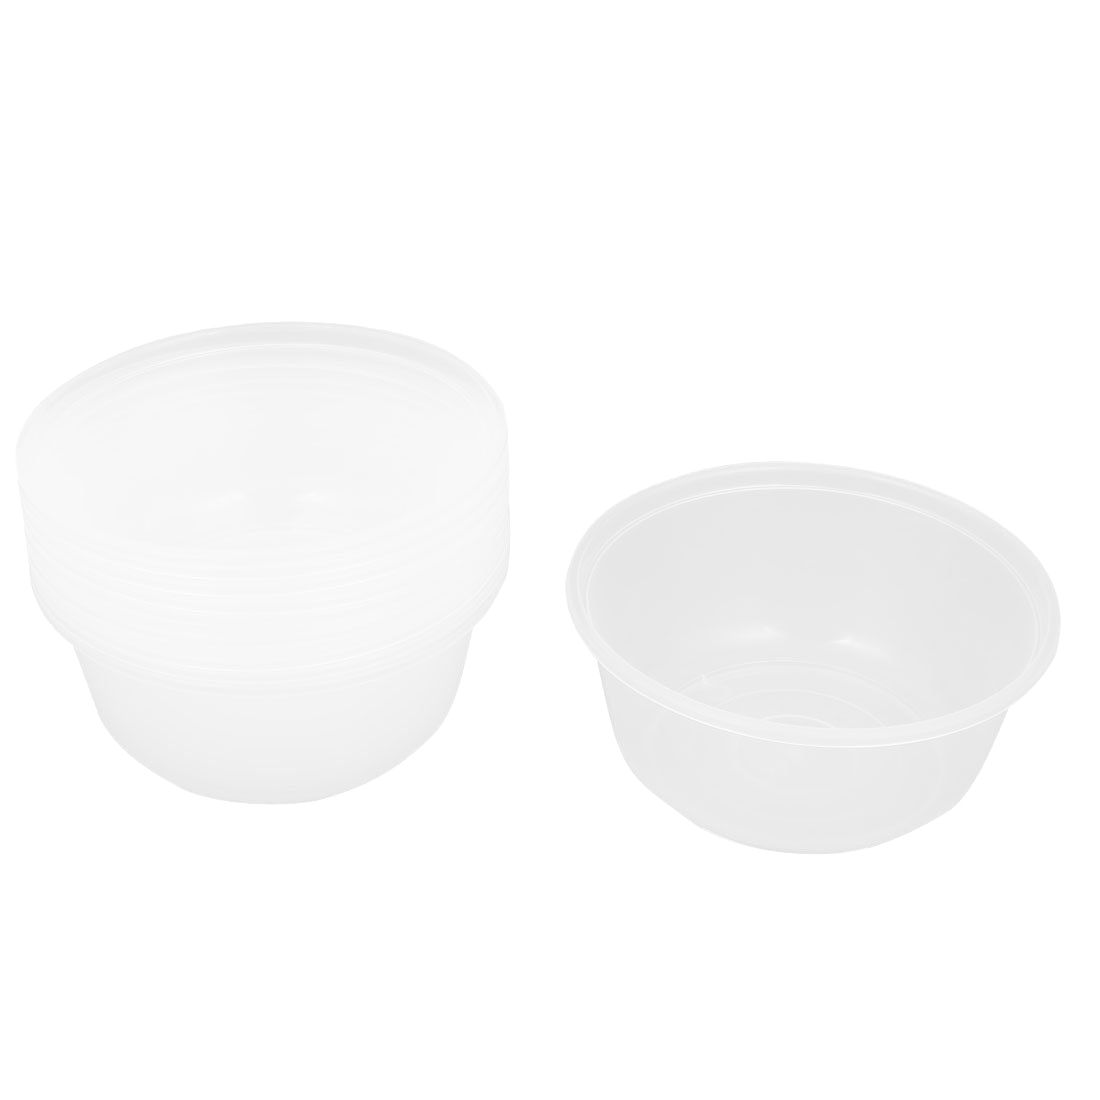 SDFC-PP 700 model, for wedding / birthday / party soup food bowl, 10 pieces, transparent